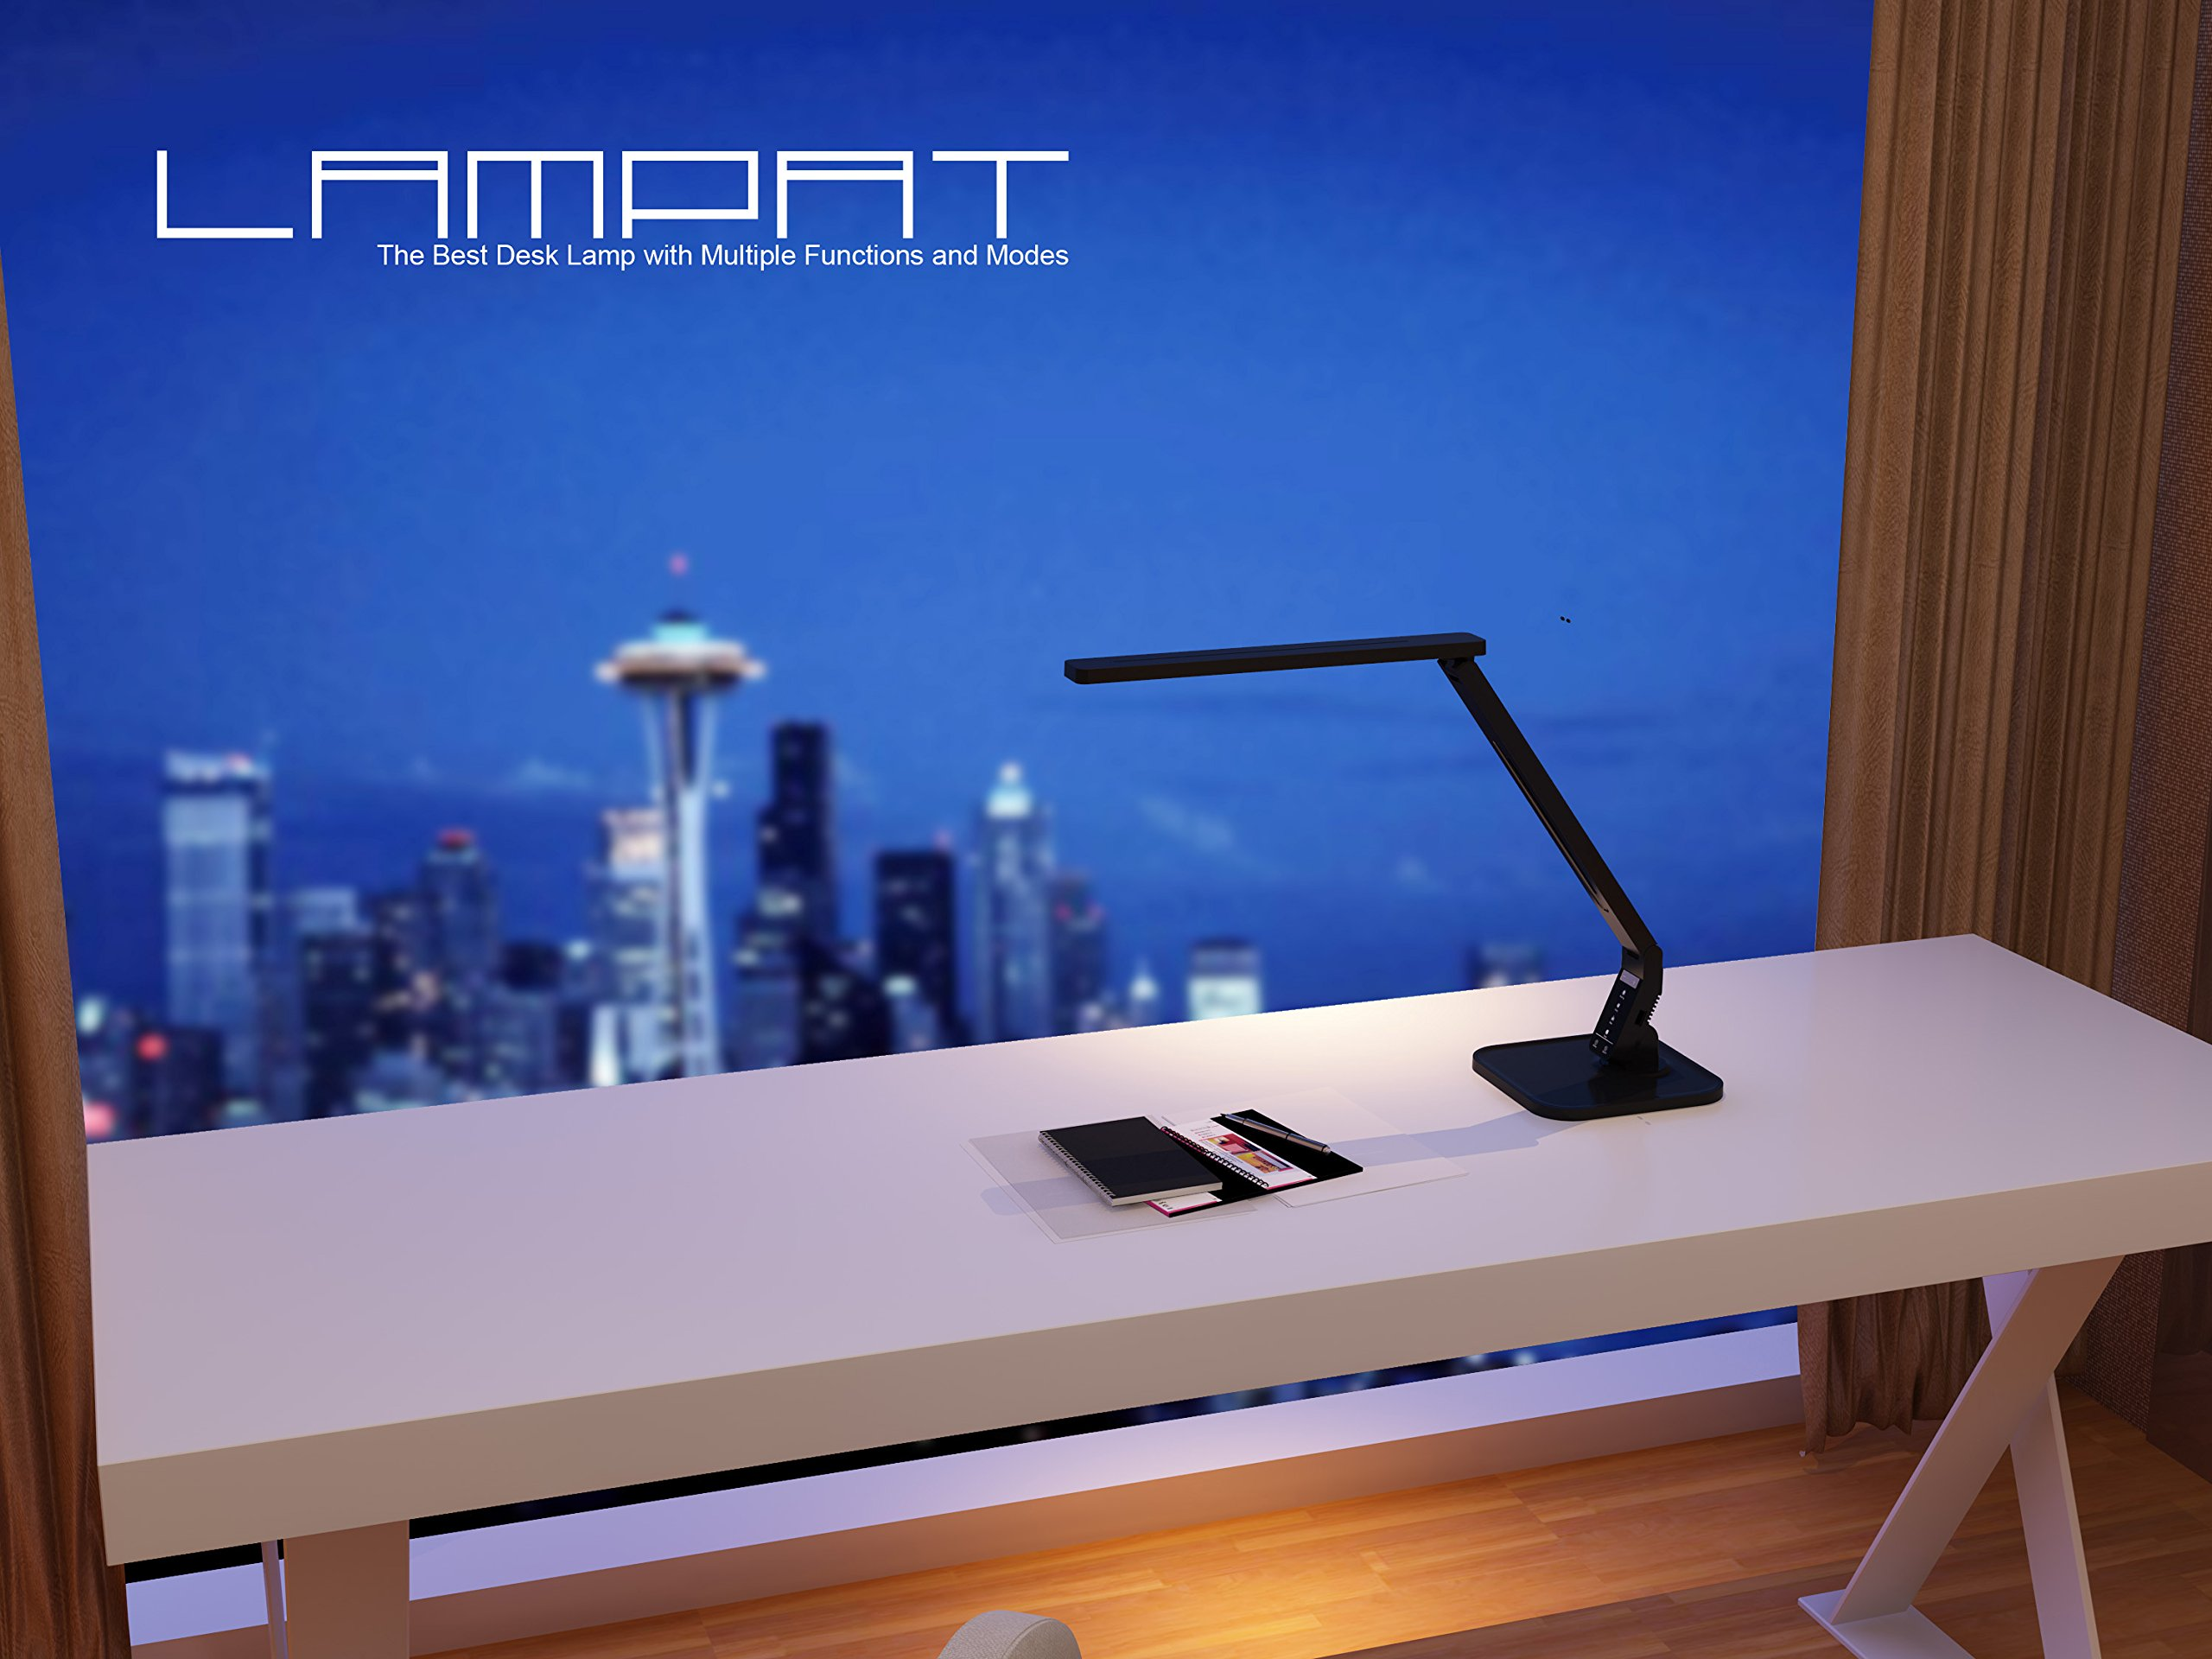 Lampat LED Desk Lamp, Dimmable LED Table Lamp Black, 4 Lighting Modes, 5-Level Dimmer, Touch-Sensitive Control Panel, 1-Hour Auto Timer, 5V/2A USB Charging Port) by LAMPAT (Image #2)